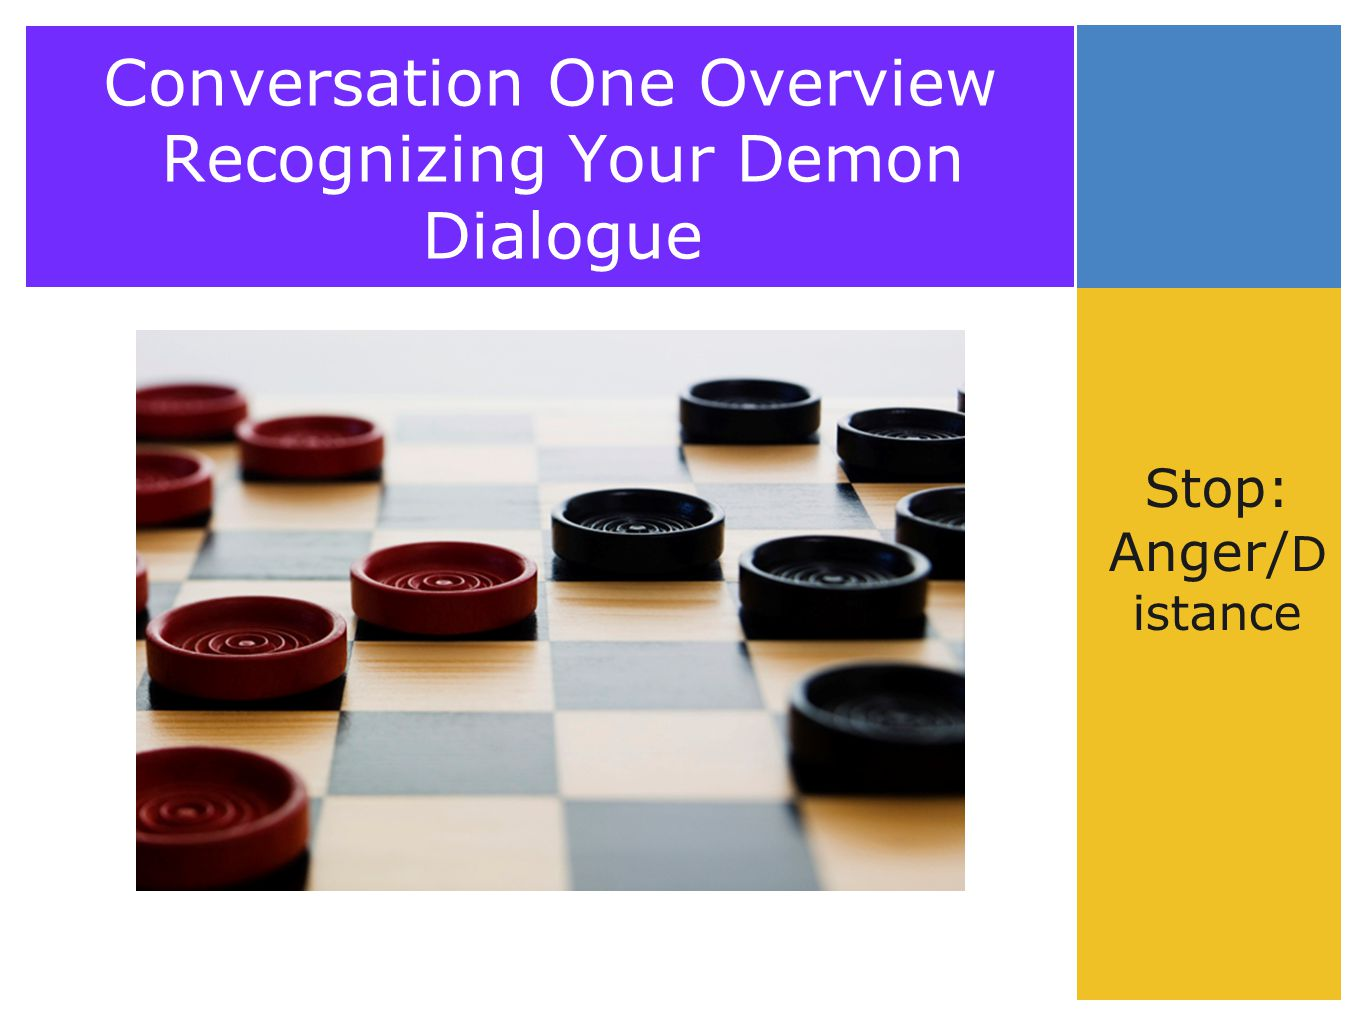 Conversation One Overview Recognizing Your Demon Dialogue